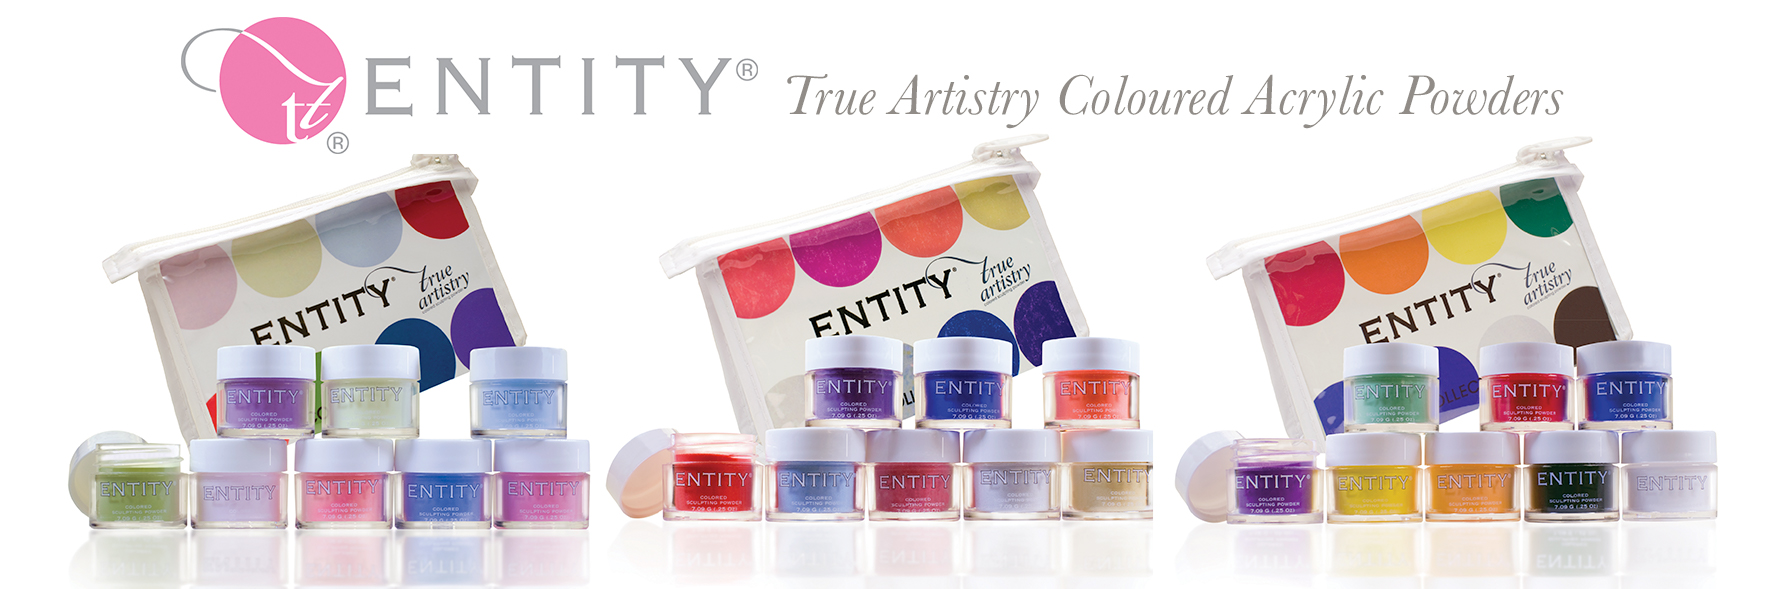 True artistry powders